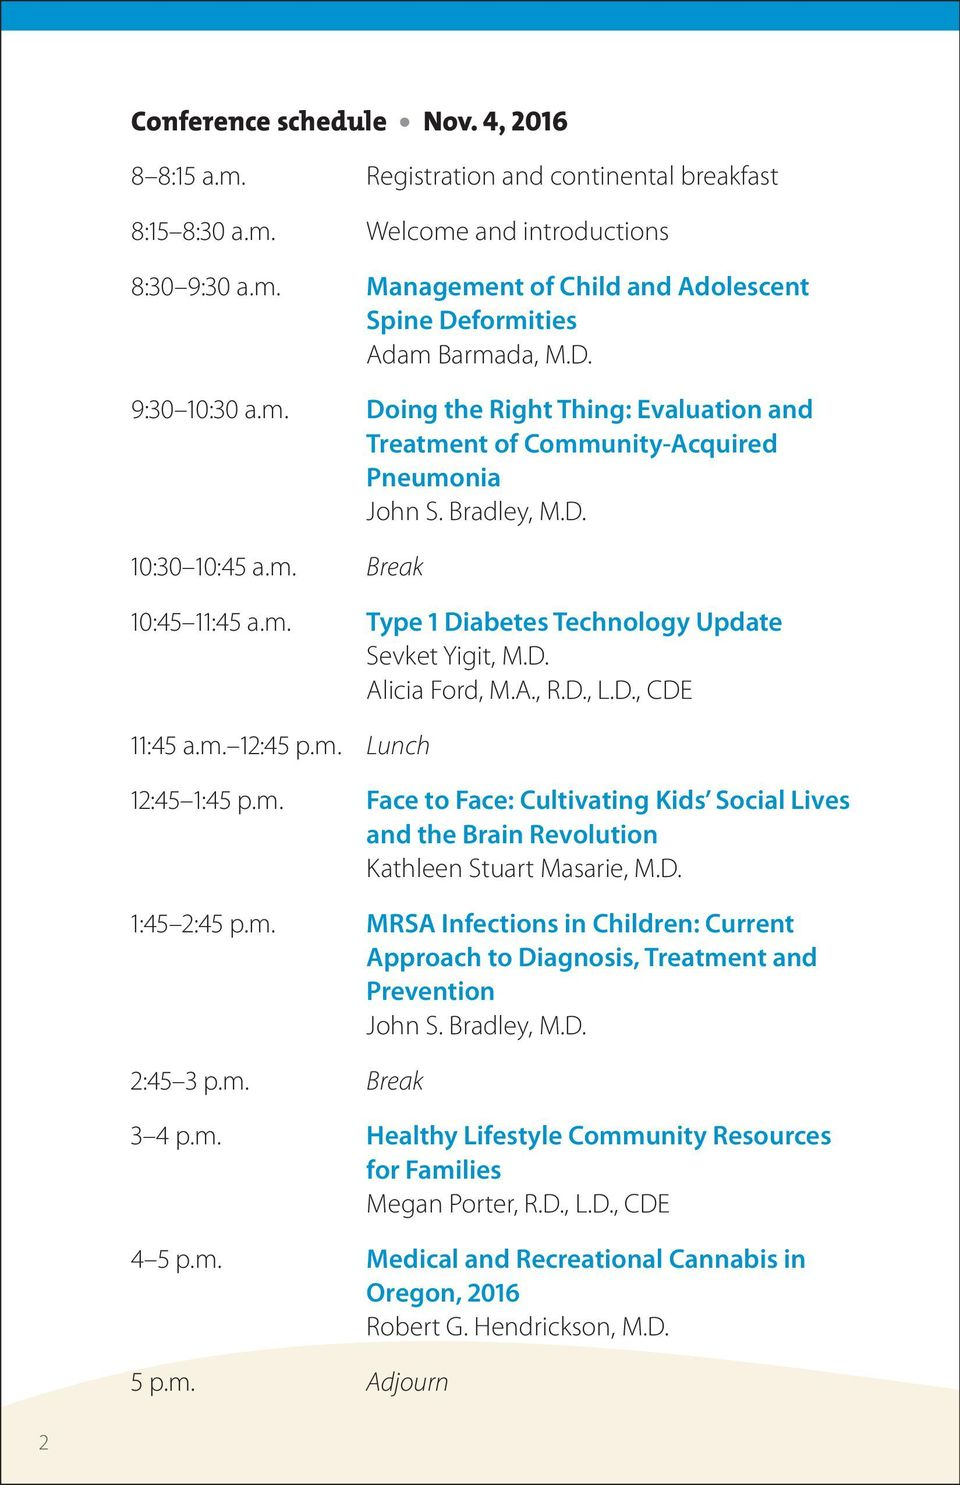 D. Alicia Ford, M.A., R.D., L.D., CDE 11:45 a.m. 12:45 p.m. Lunch 12:45 1:45 p.m. Face to Face: Cultivating Kids Social Lives and the Brain Revolution Kathleen Stuart Masarie, M.D. 1:45 2:45 p.m. MRSA Infections in Children: Current Approach to Diagnosis, Treatment and Prevention John S.